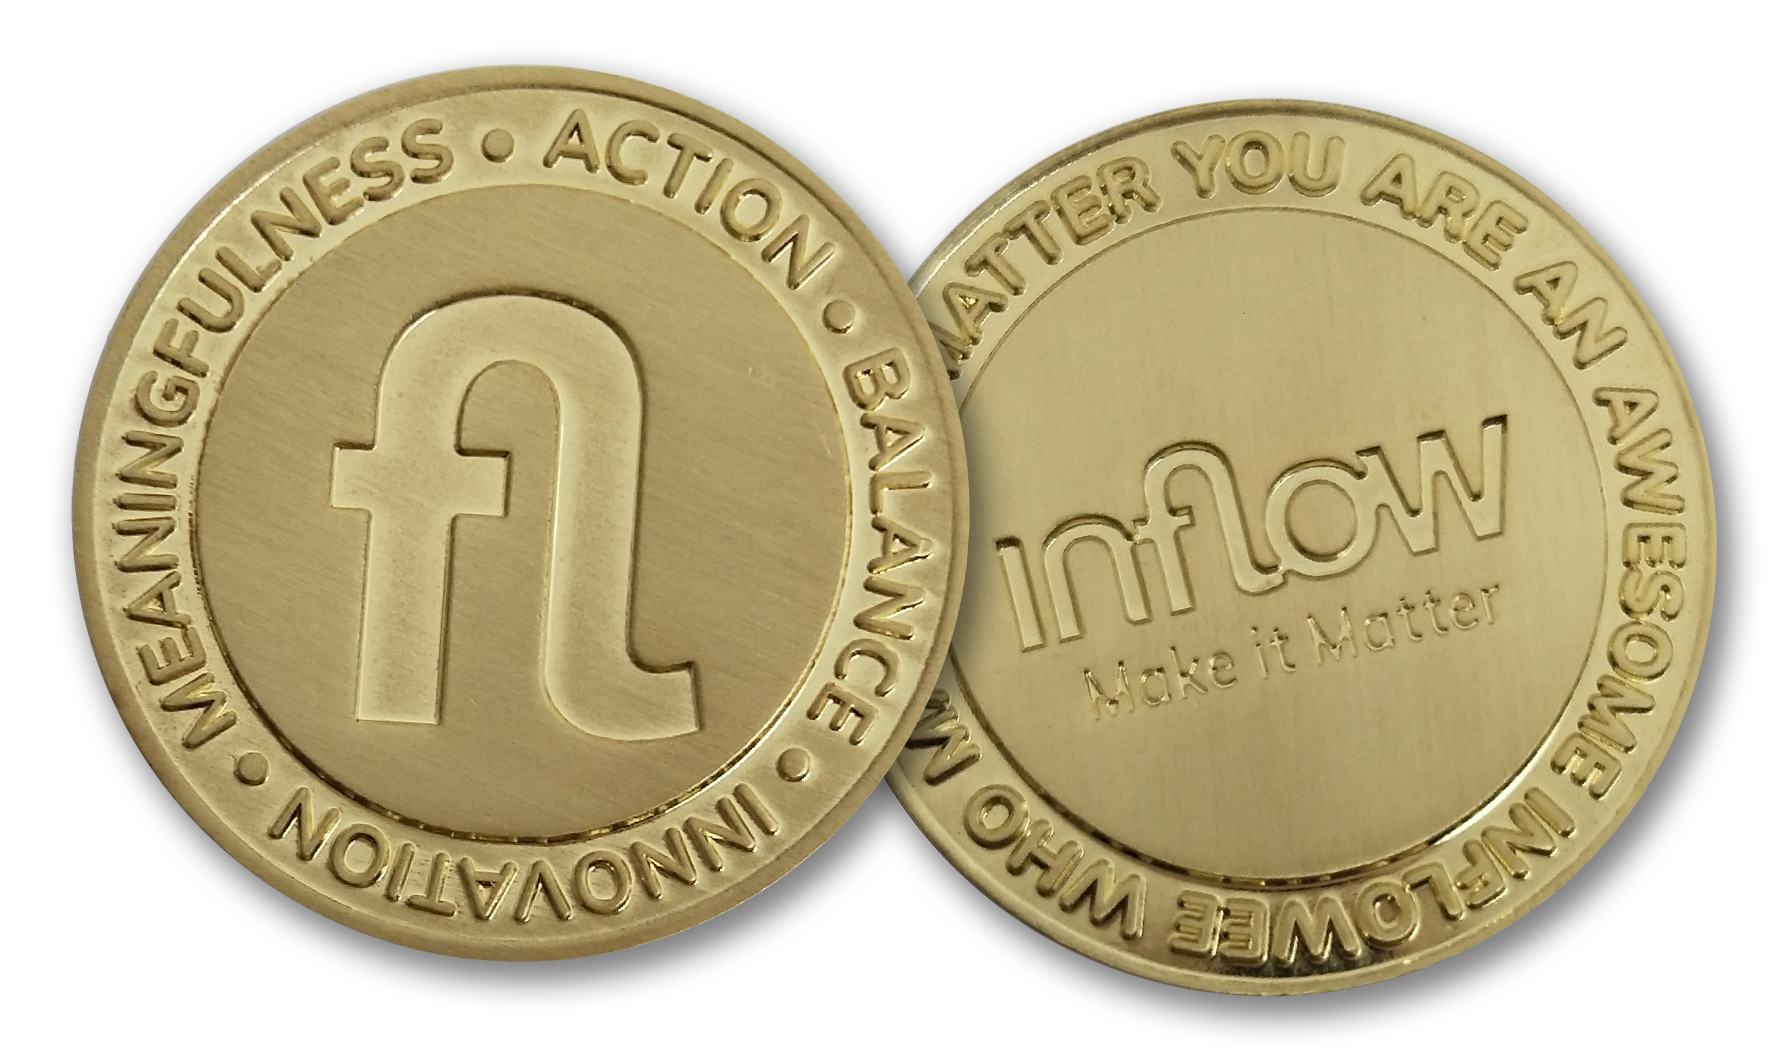 Inflow's Awesomeness Coin Award